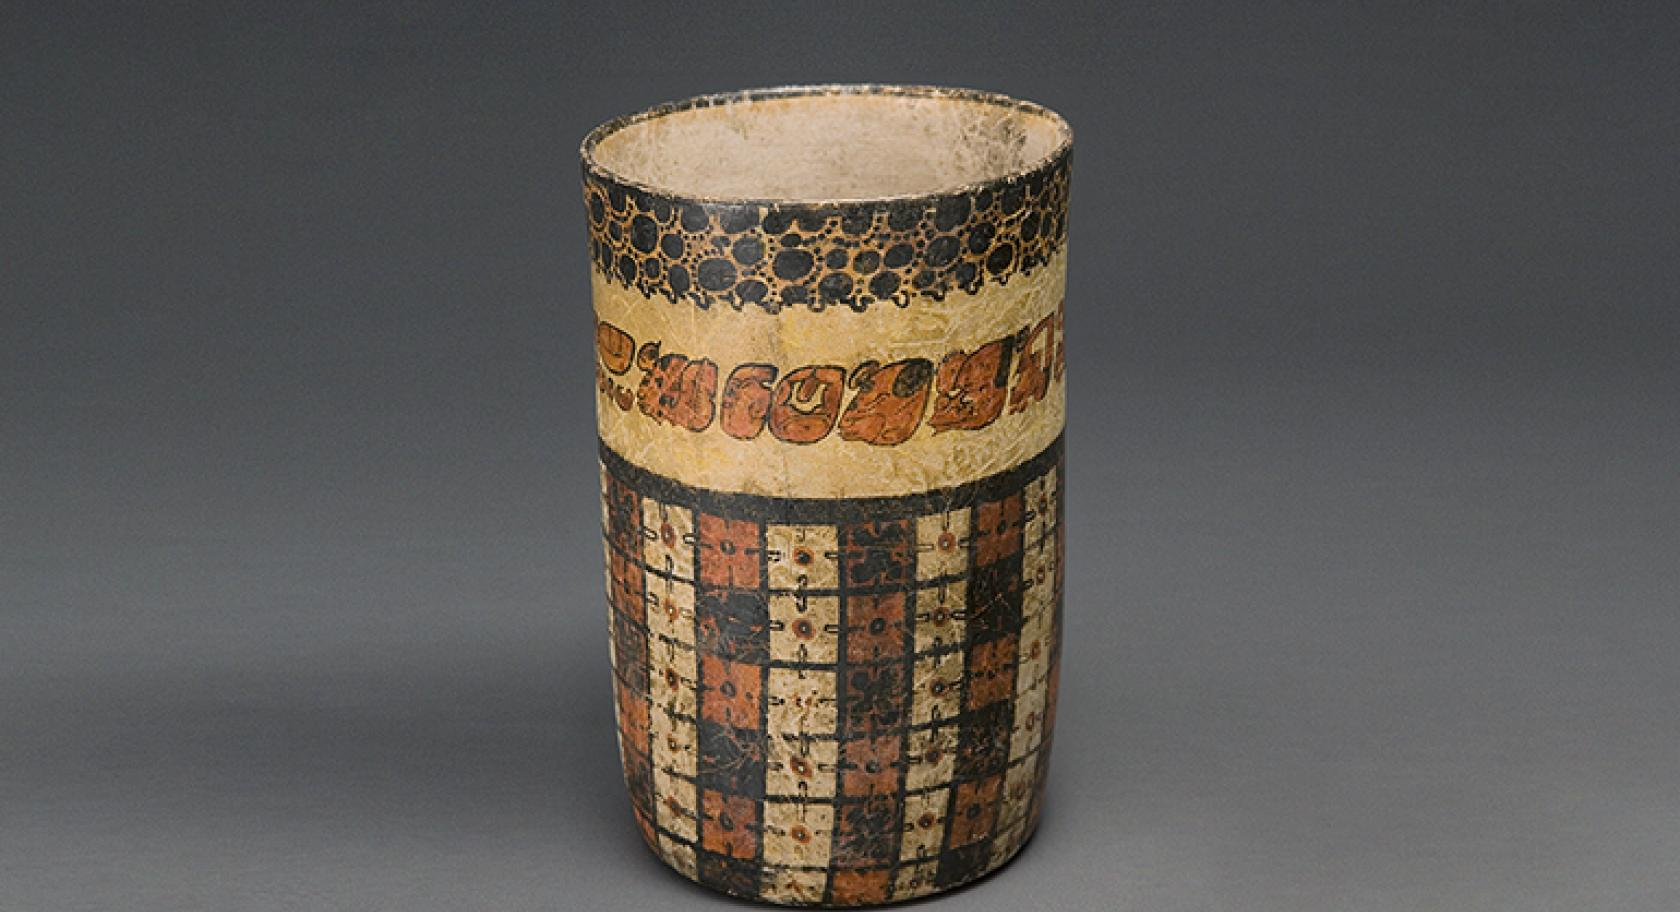 Vase with checkerboard pattern and Jaguar Pelt, Guatemala, Petén region, Maya culture, 600–900, earthenware and pigment, purchased with funds from Friends of the Art Museum, UMFA 1984.003